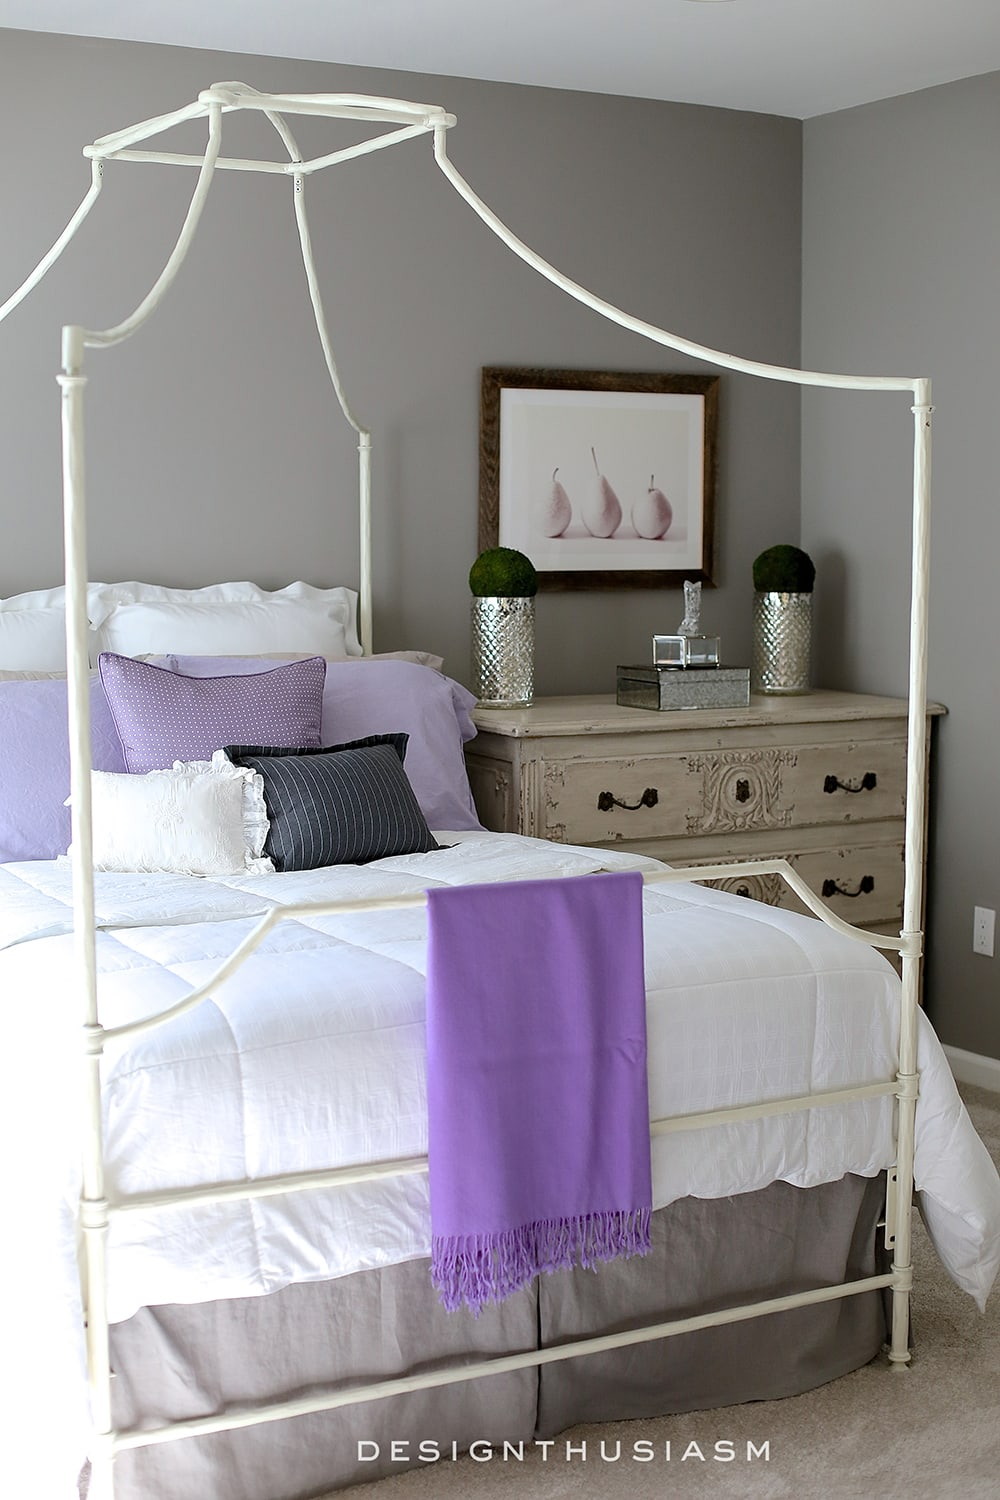 Purple Lilac Bedroom Ideas Part - 28: Lilac And Grey Bedroom | Designthusiasm.com